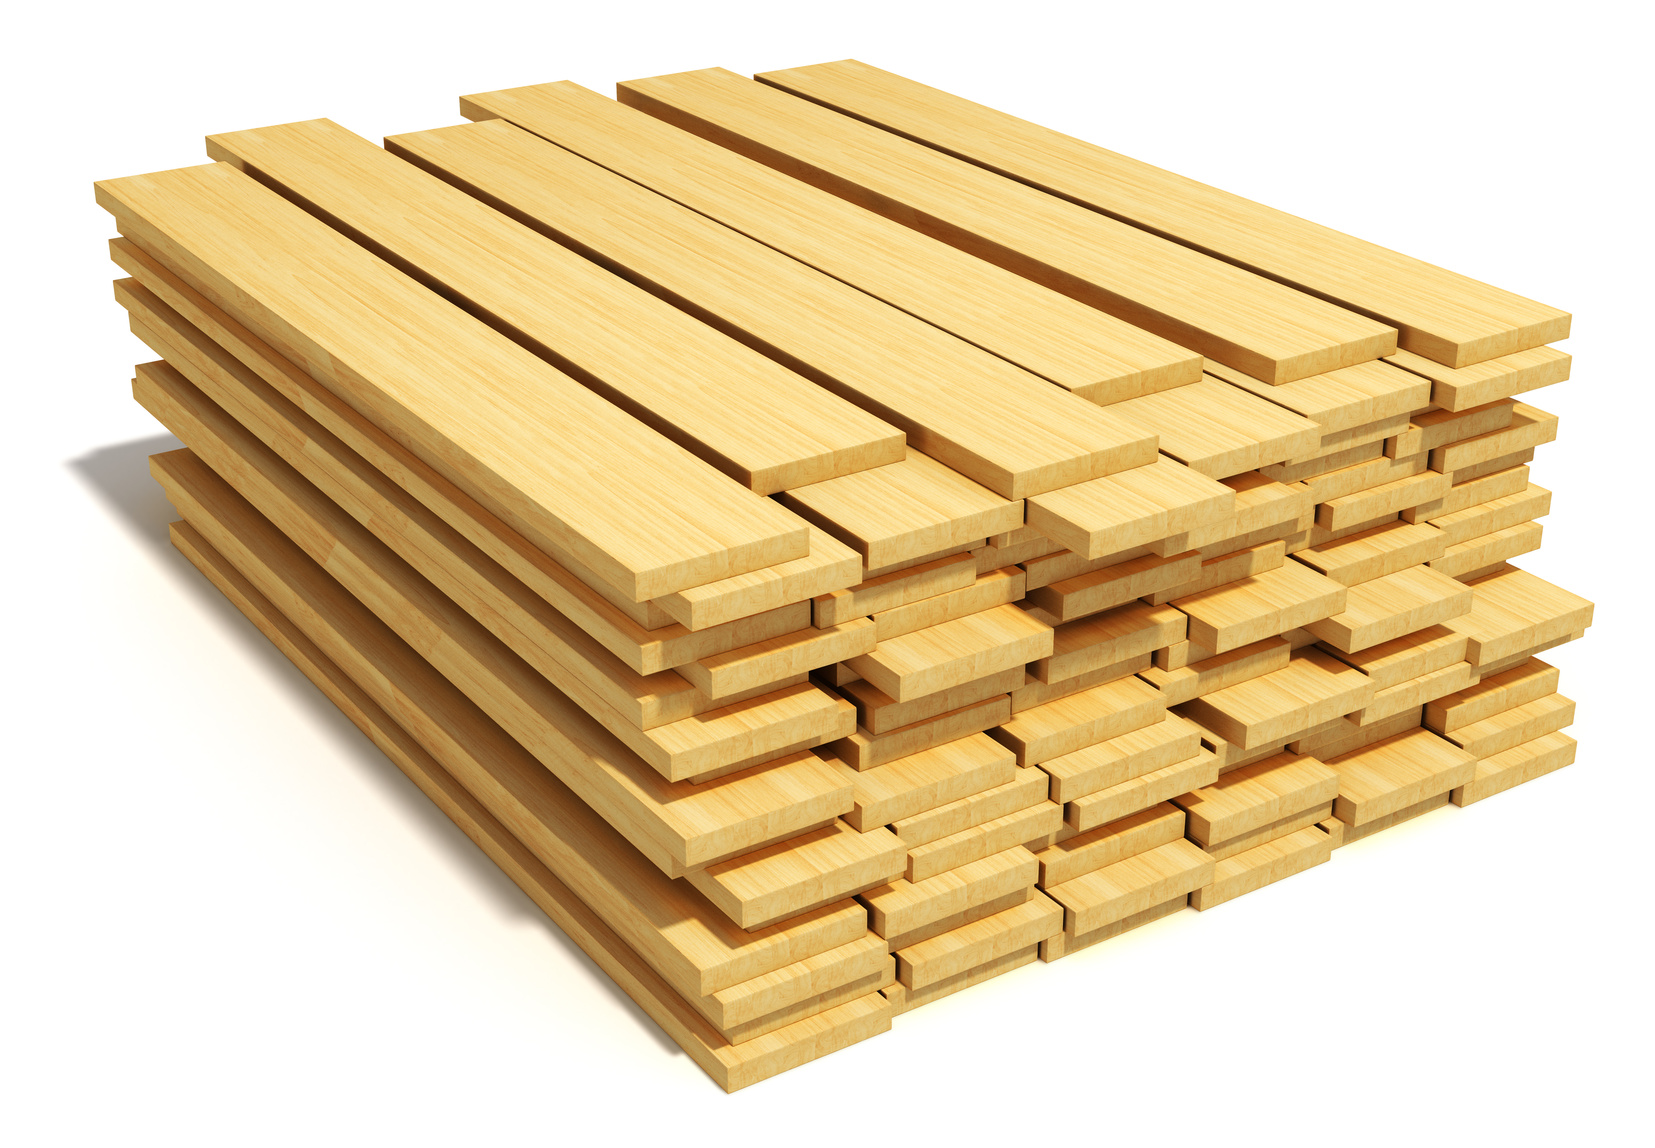 Storing your wood on the jobsite so that it can acclimate to the indoor conditions prior to installation can help ensure that is doesn't expand/contract later, avoiding callbacks.